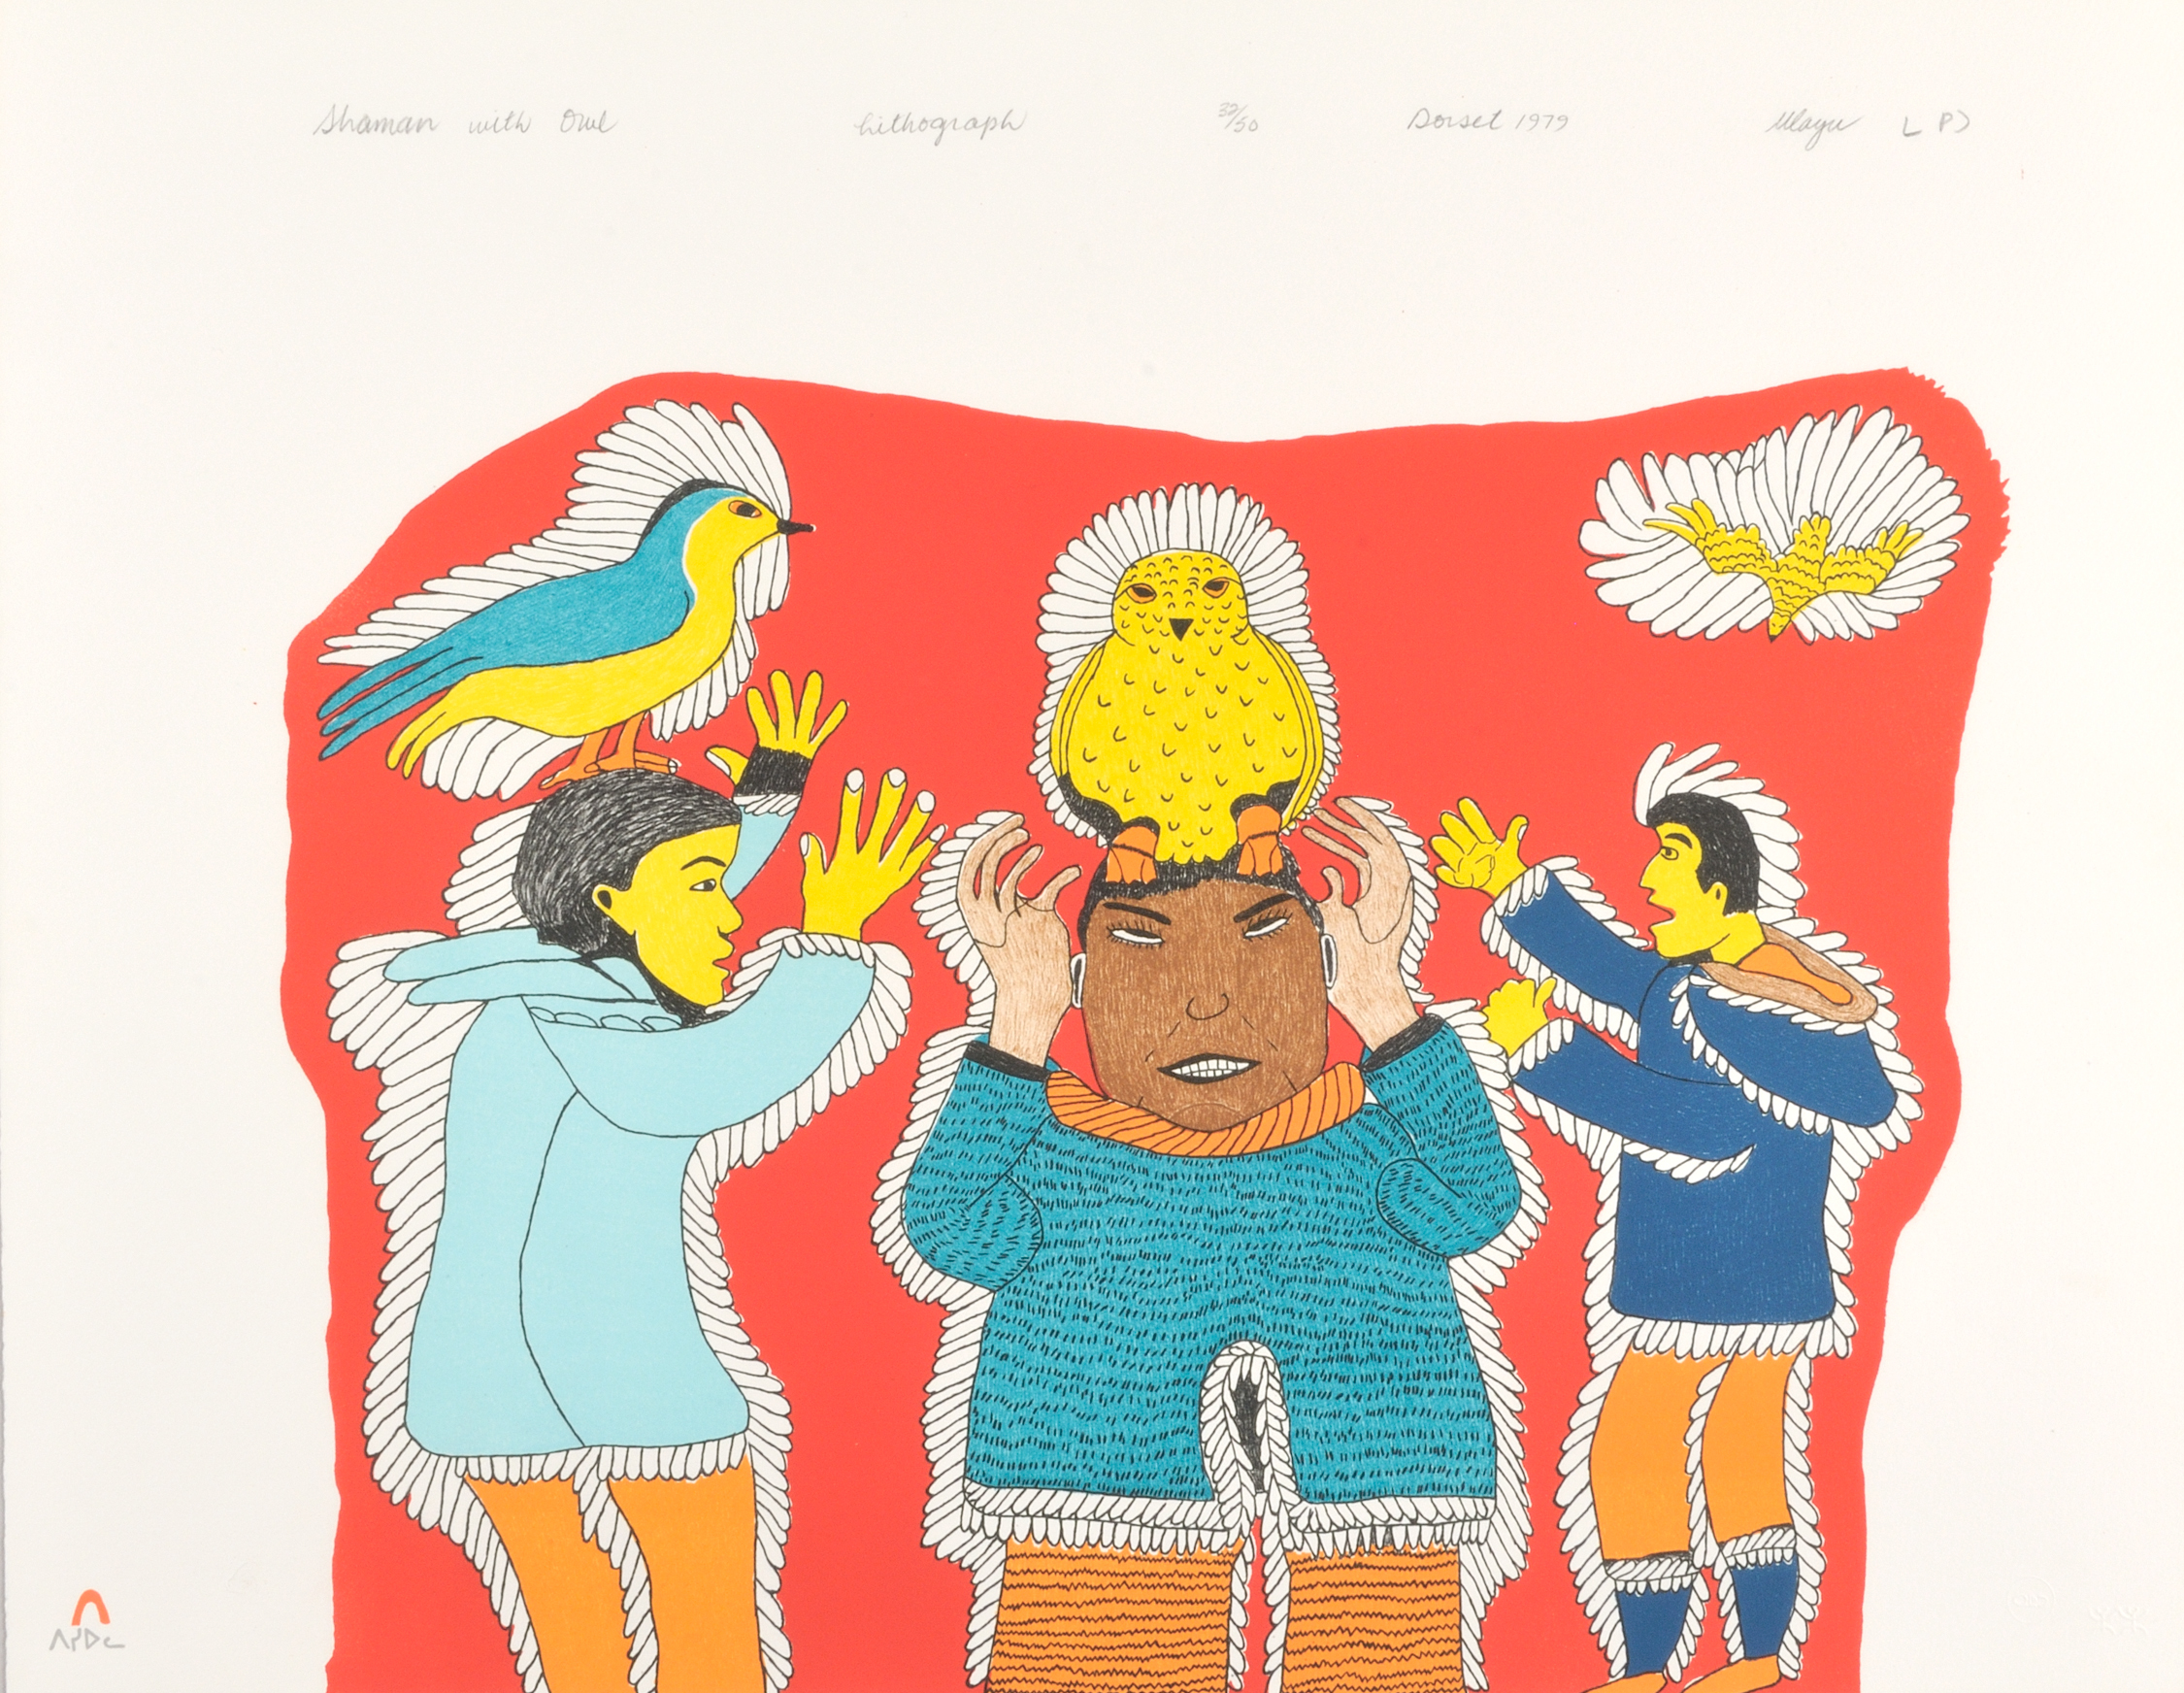 Ulayu Pingwartok  SHAMAN WITH OWL Lithograph 1979 51.5 x 66 cm $200.00 CDN Released in the 1979 collection Dorset ID#: 79-L30